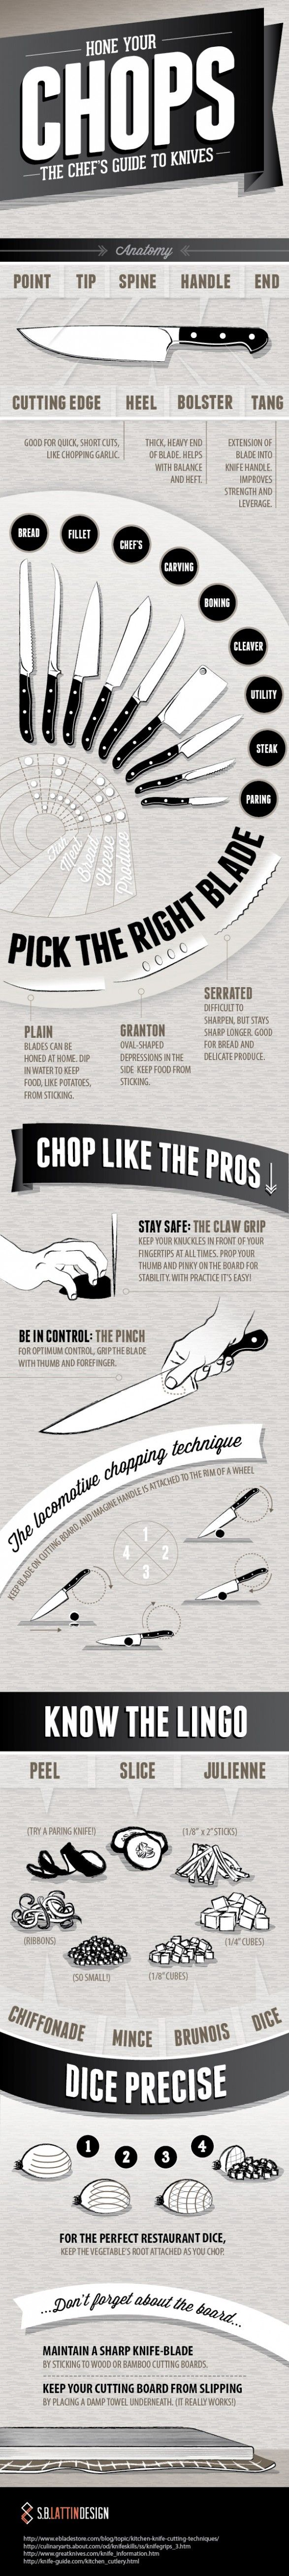 A totally brilliant starter guide :: Hone Your Chops: The Chef.